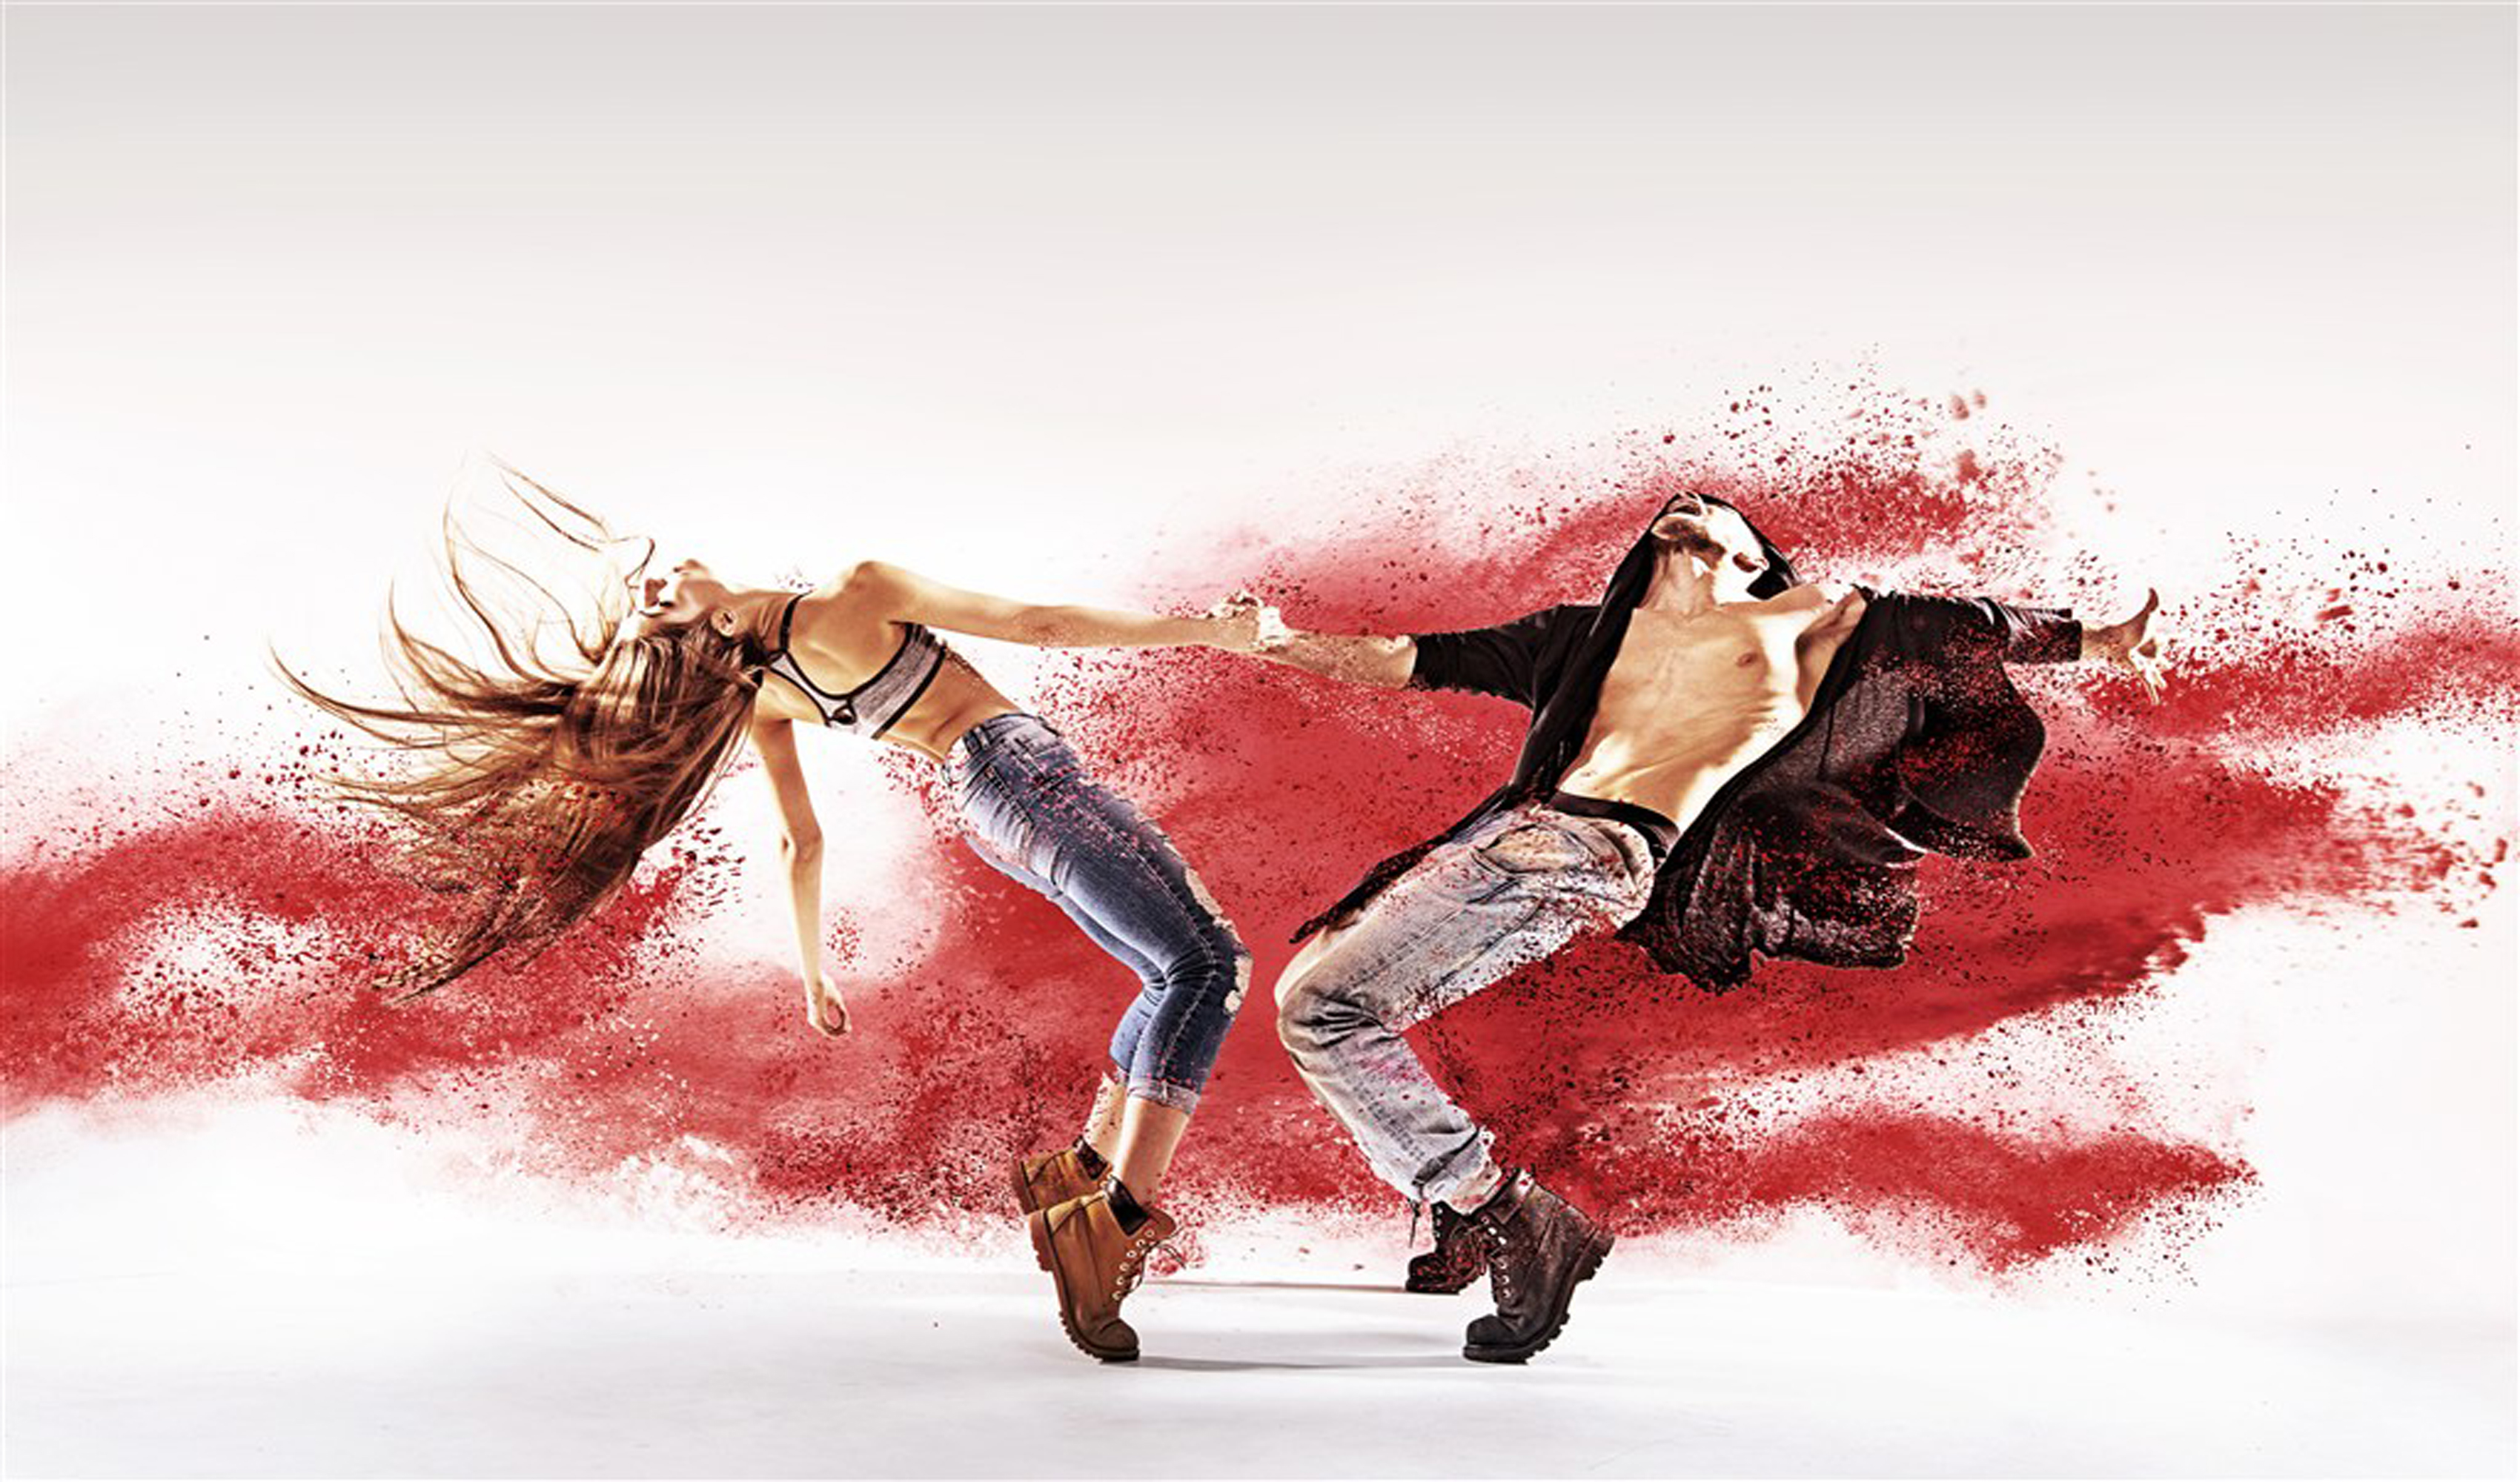 Cool Wallpapers For Boys Of Money And Cars Hop Fashion Dancing Youth Dance Posters Enrollment Hiphop